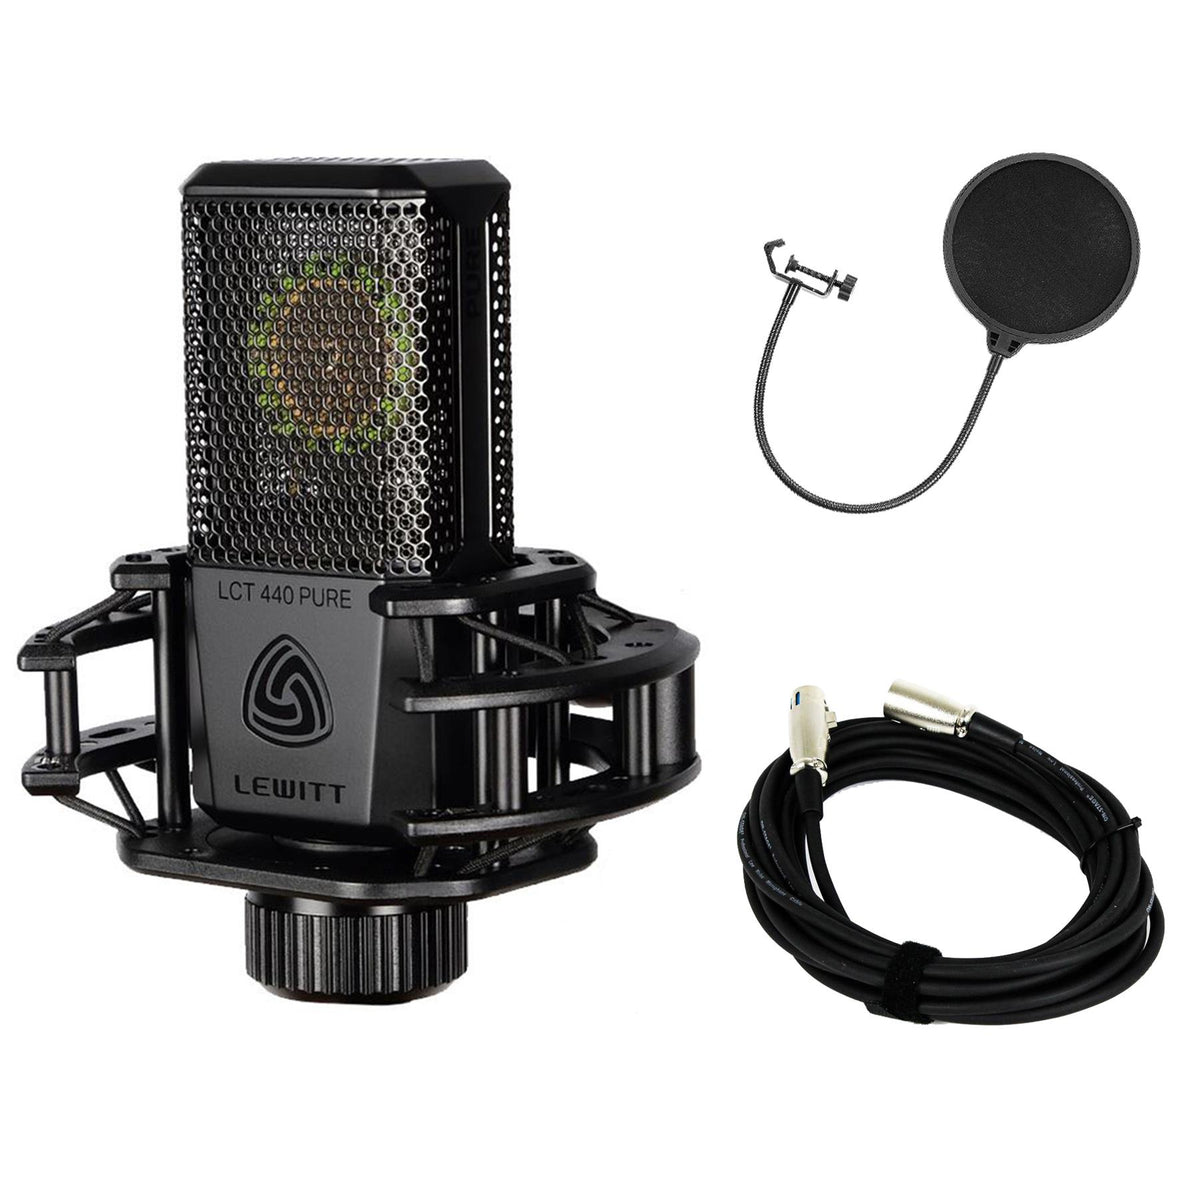 Lewitt LCT-440 Pure Microphone Bundle with 20-foot XLR Cable & Pop Filter